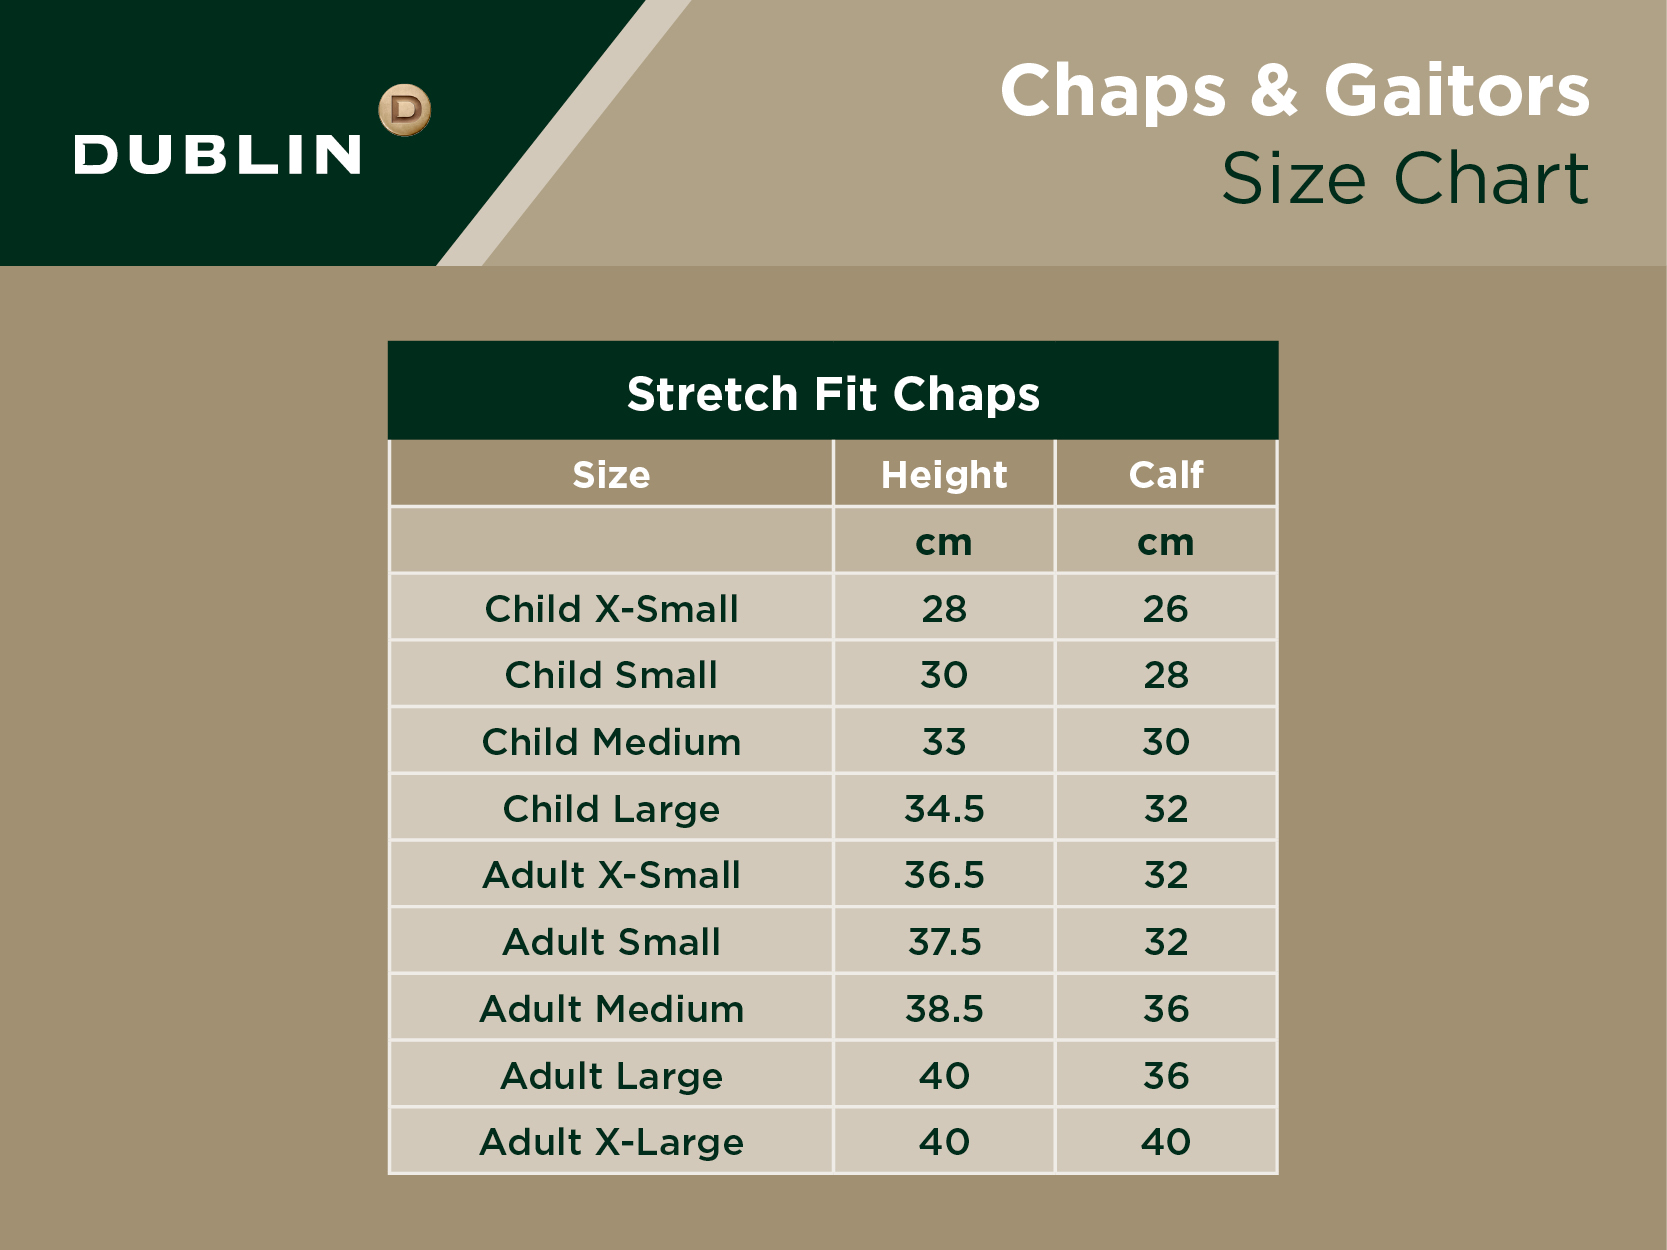 Stretch Fit Chaps Size Chart